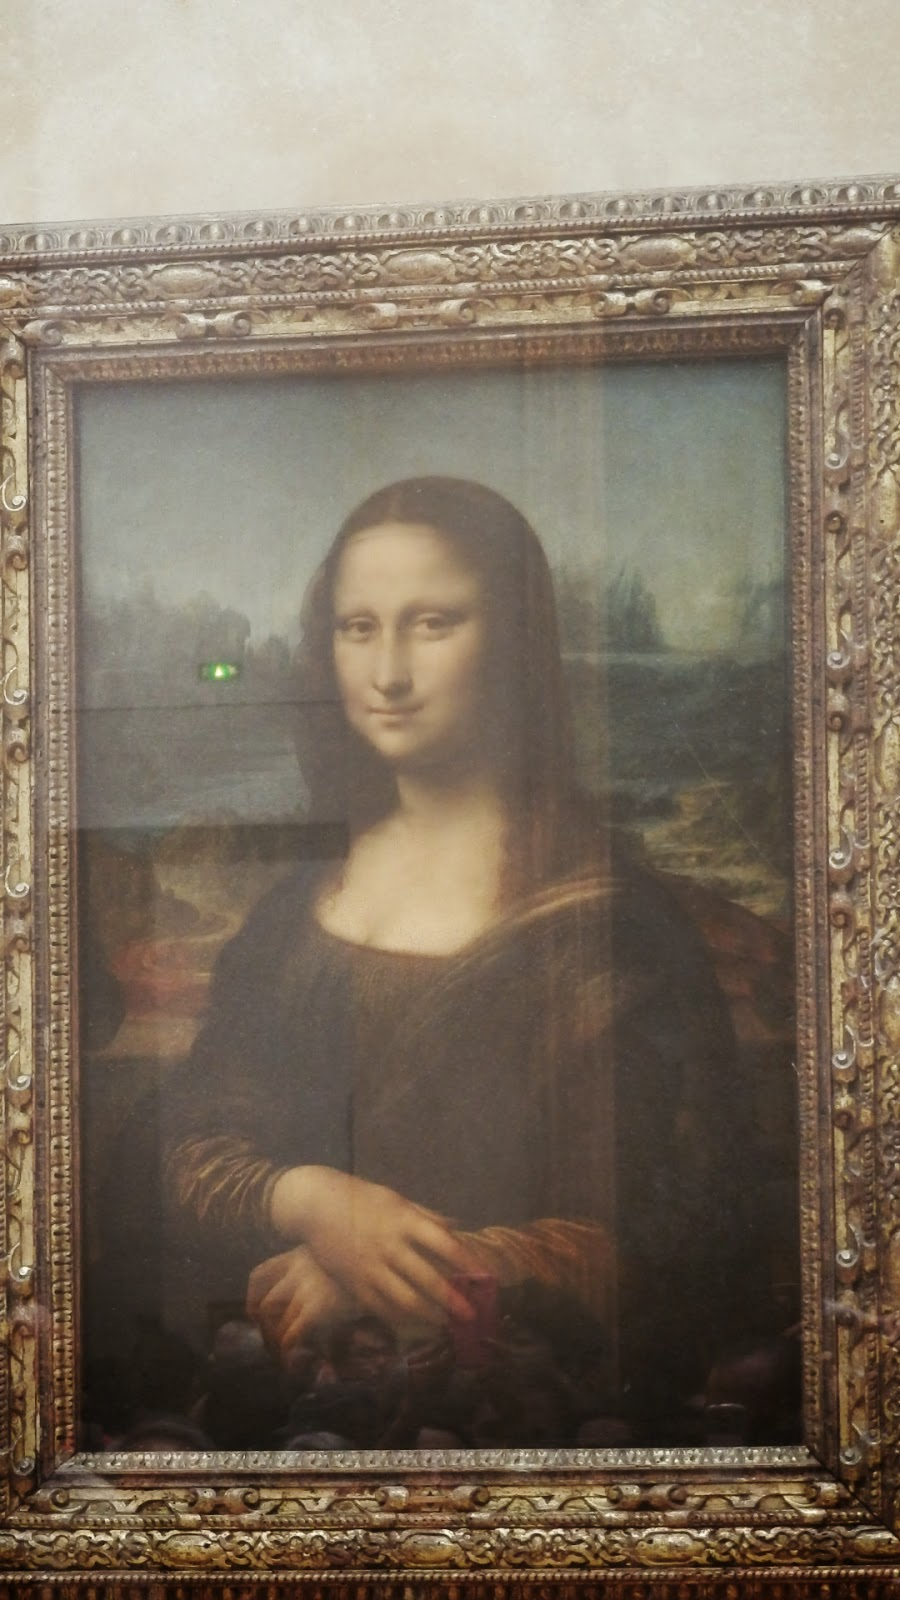 The Mona Lisa in the Louvre museum in Paris